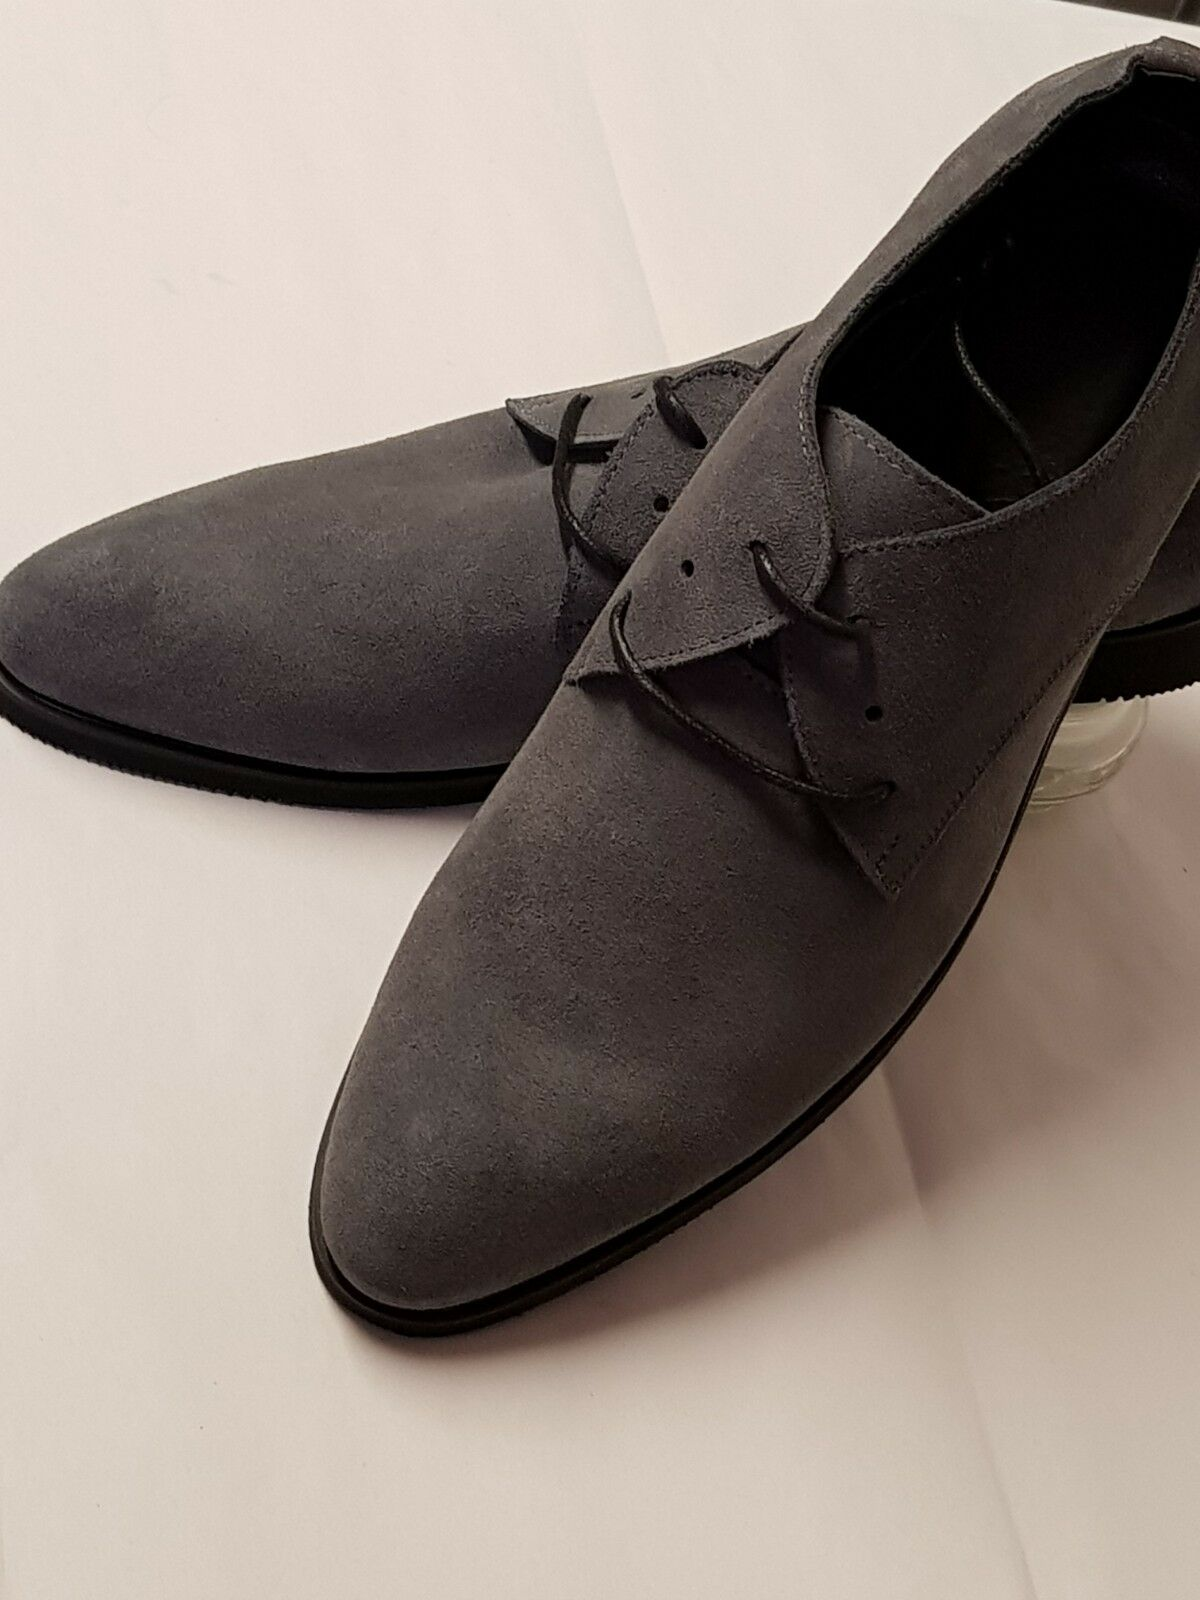 WARBERG MENS GENUINE LEATHER MADE SUEDE GREY CASUAL LOAFER